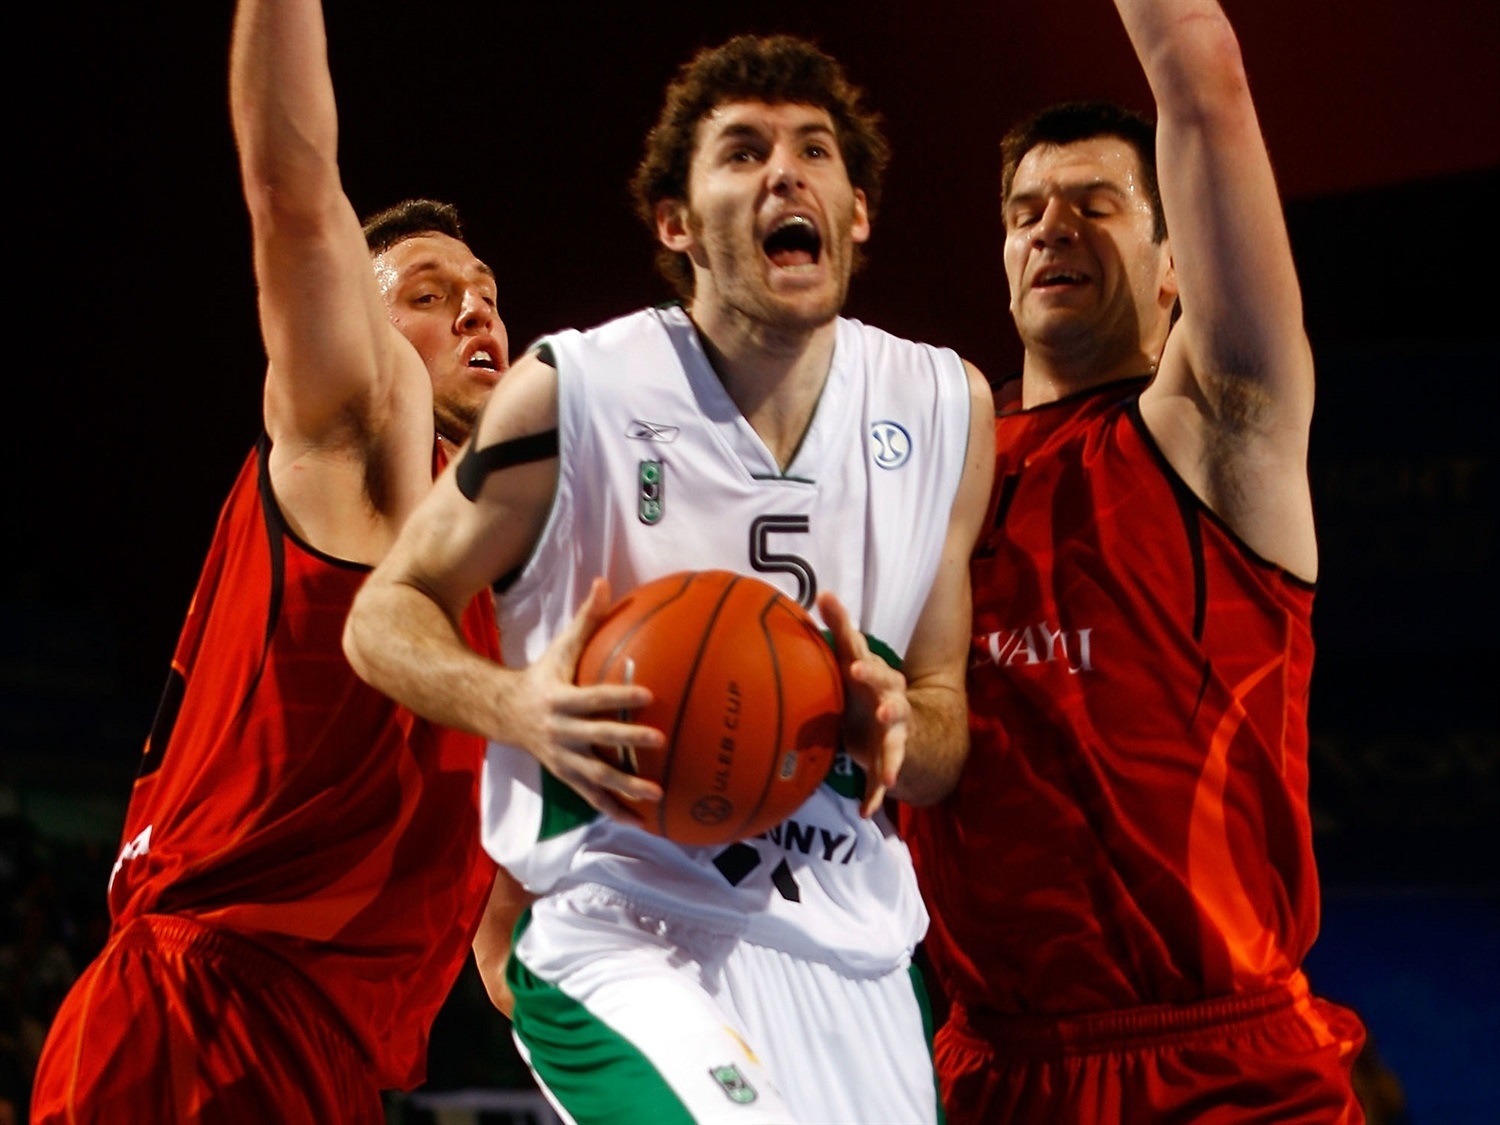 Rudy Fernandez - DKV Joventut - Final Eight Turin 2008 - EC07